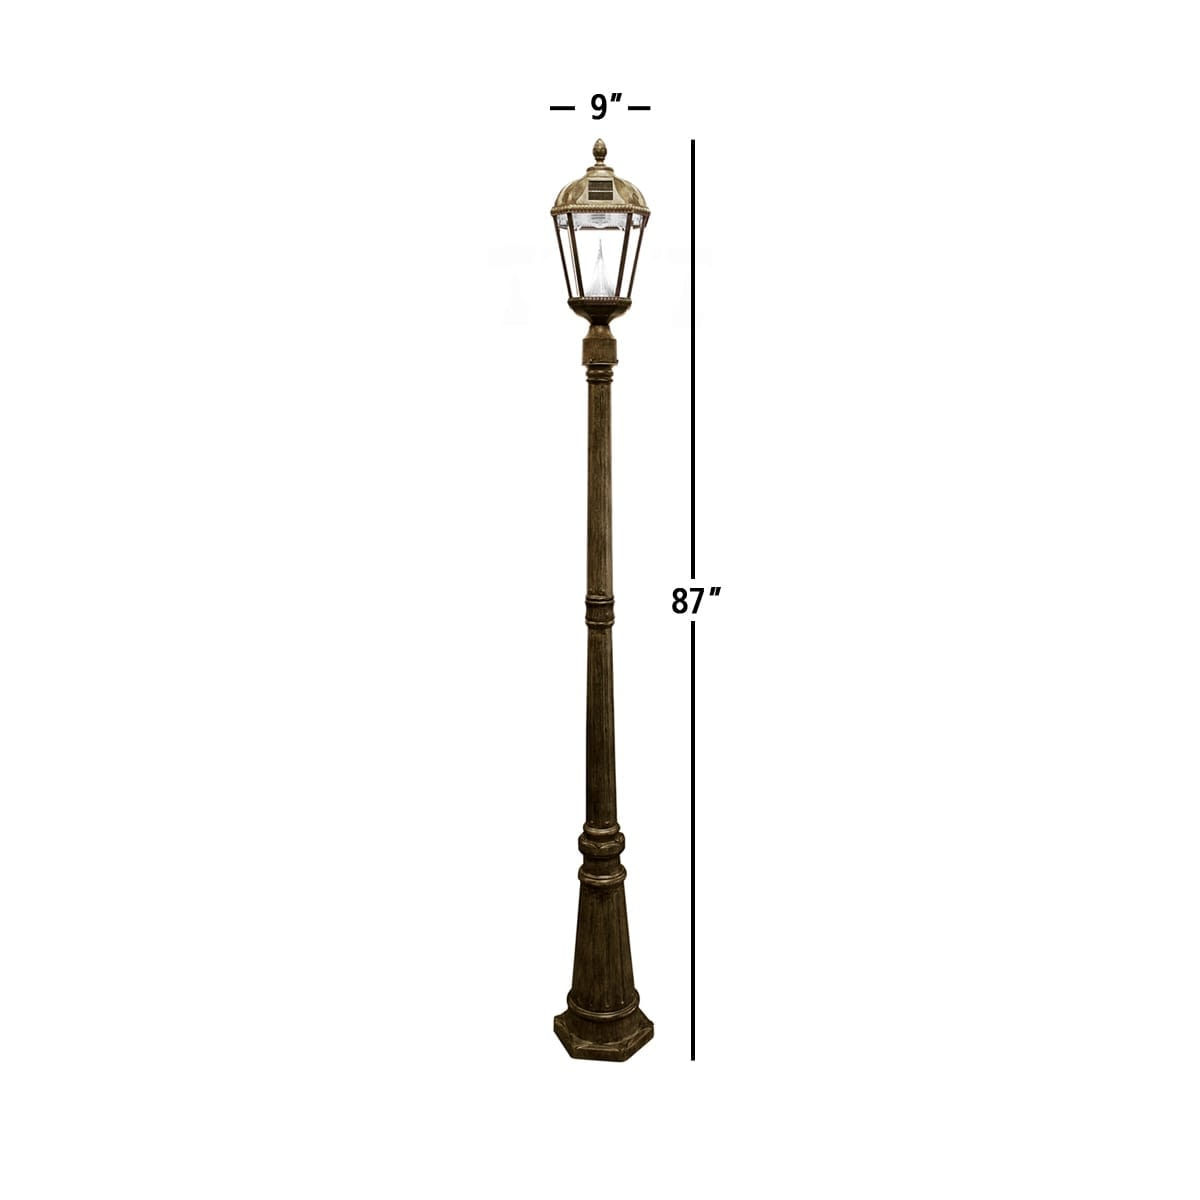 Royal Solar Lamp by Gama Sonic GS-98S-WB Measurements